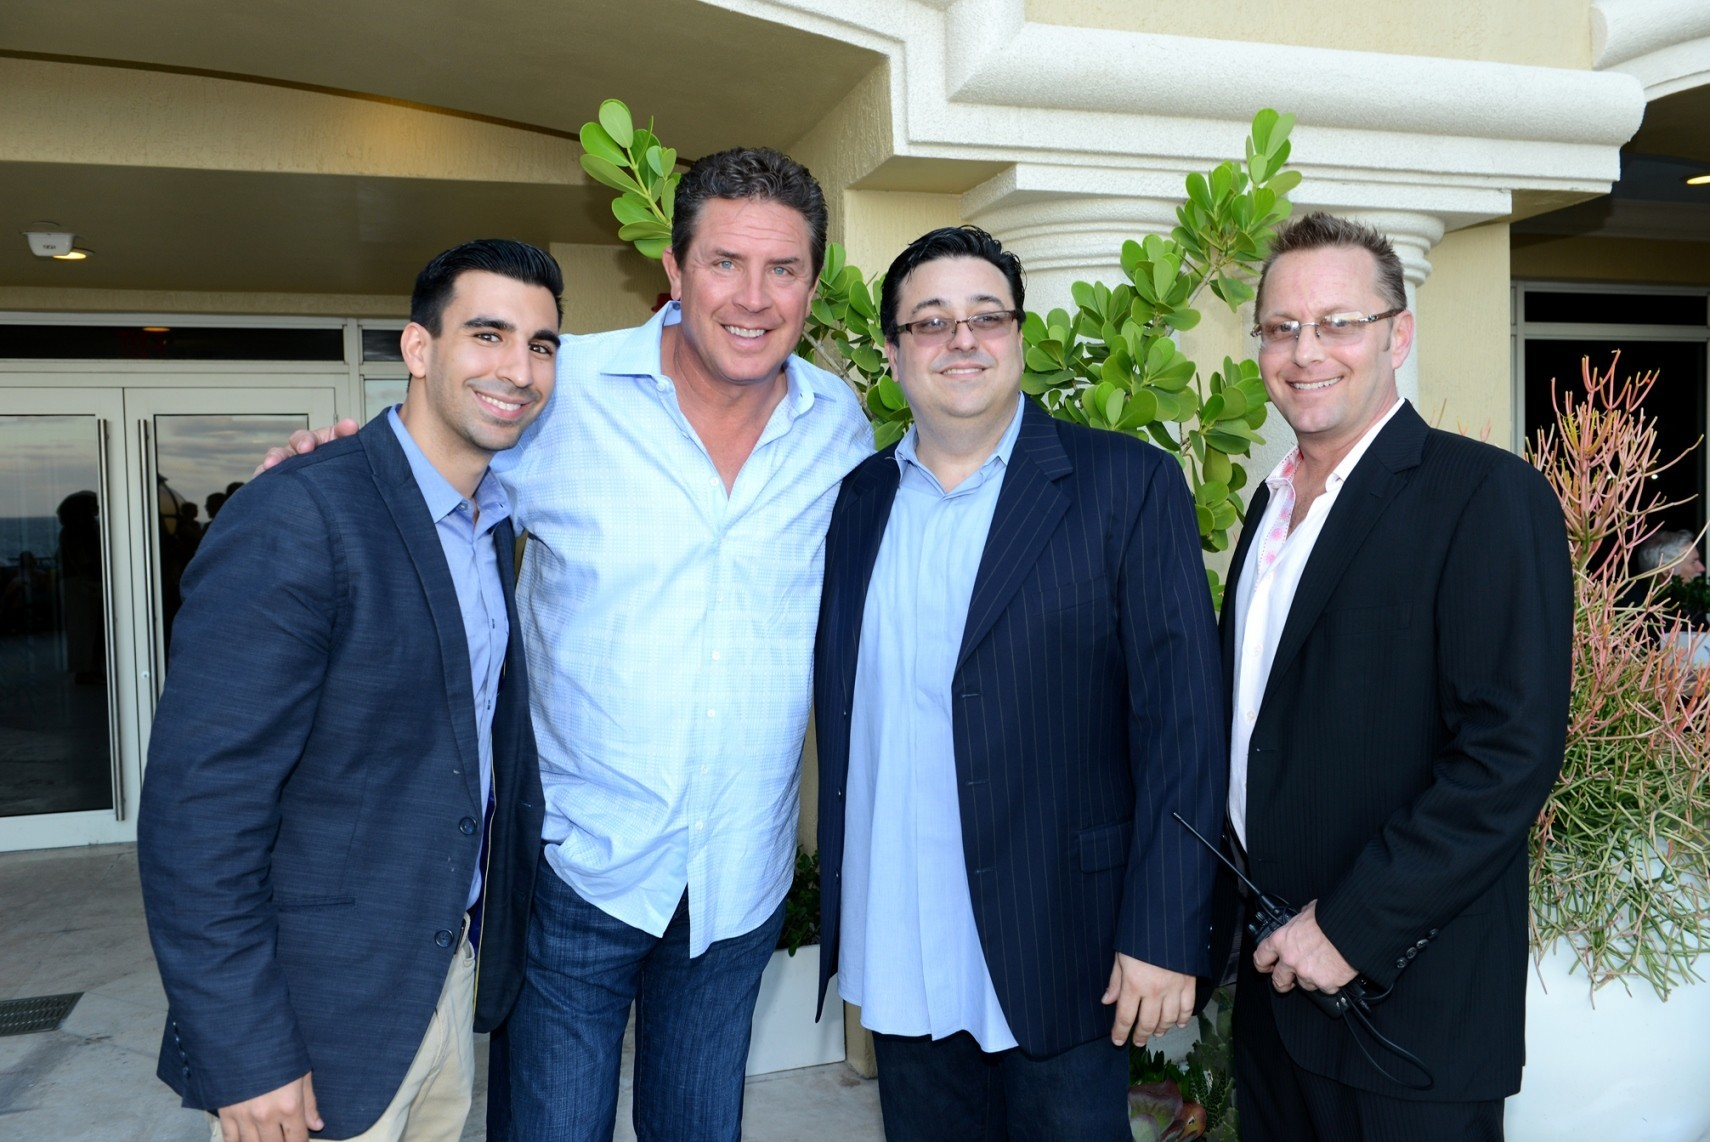 Celeb-spotting around South Florida - Danny Dapuzzo of Society 8 Hospitality Group, Dan Marino, Steven Dapuzzo and Alan Myer of Society 8 Hospitality Group